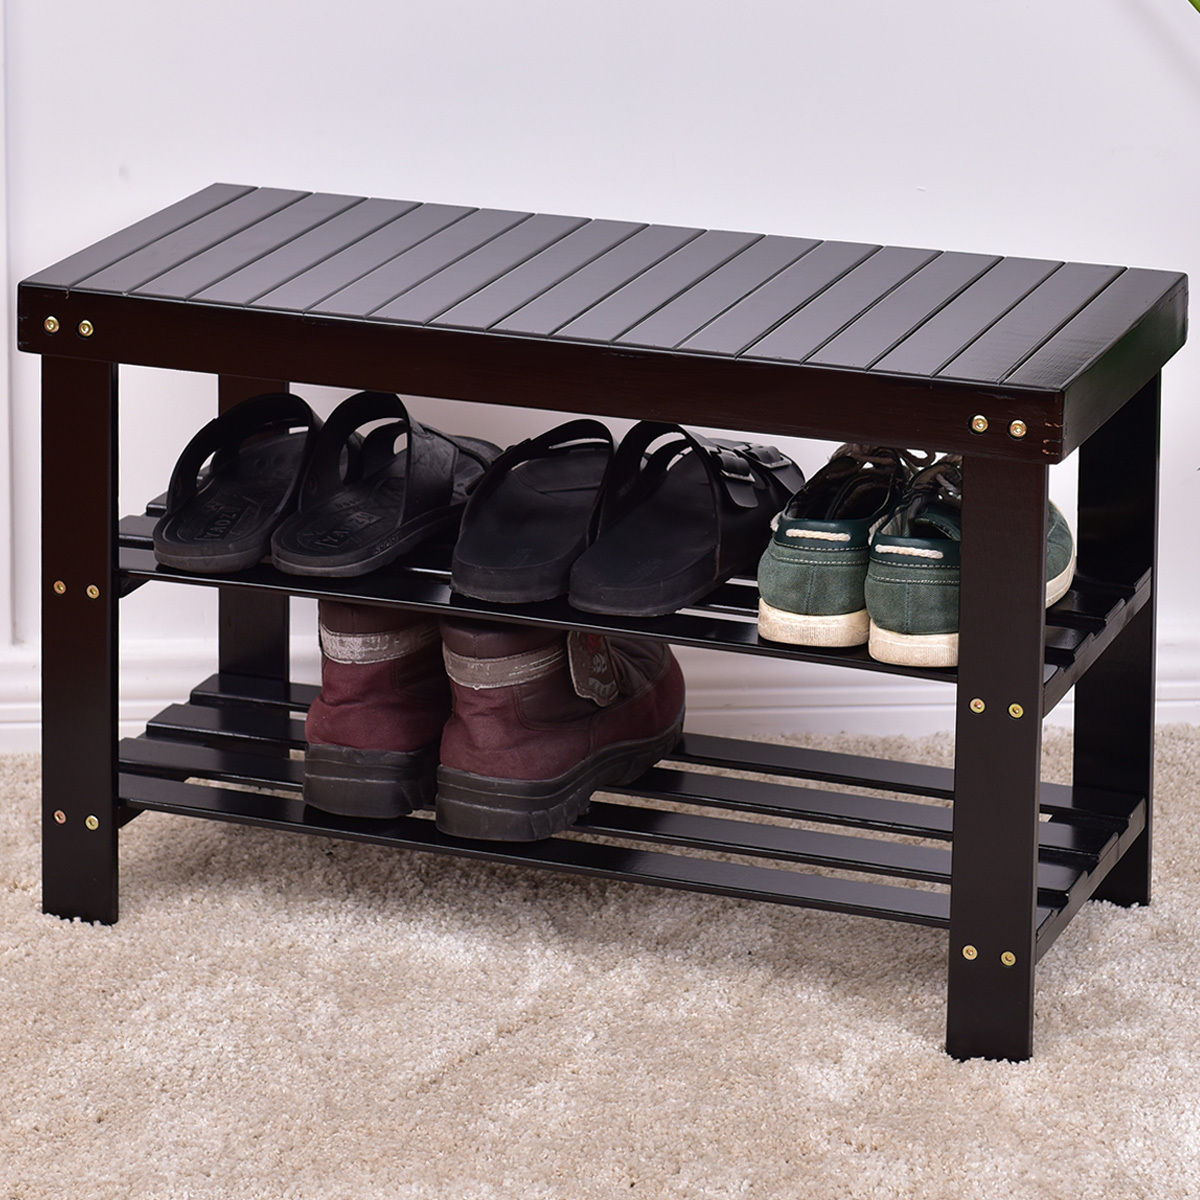 Costway 3 Tier Bamboo Shoe Rack Bench Storage Shelf Organizer Entryway Home  Furni Black